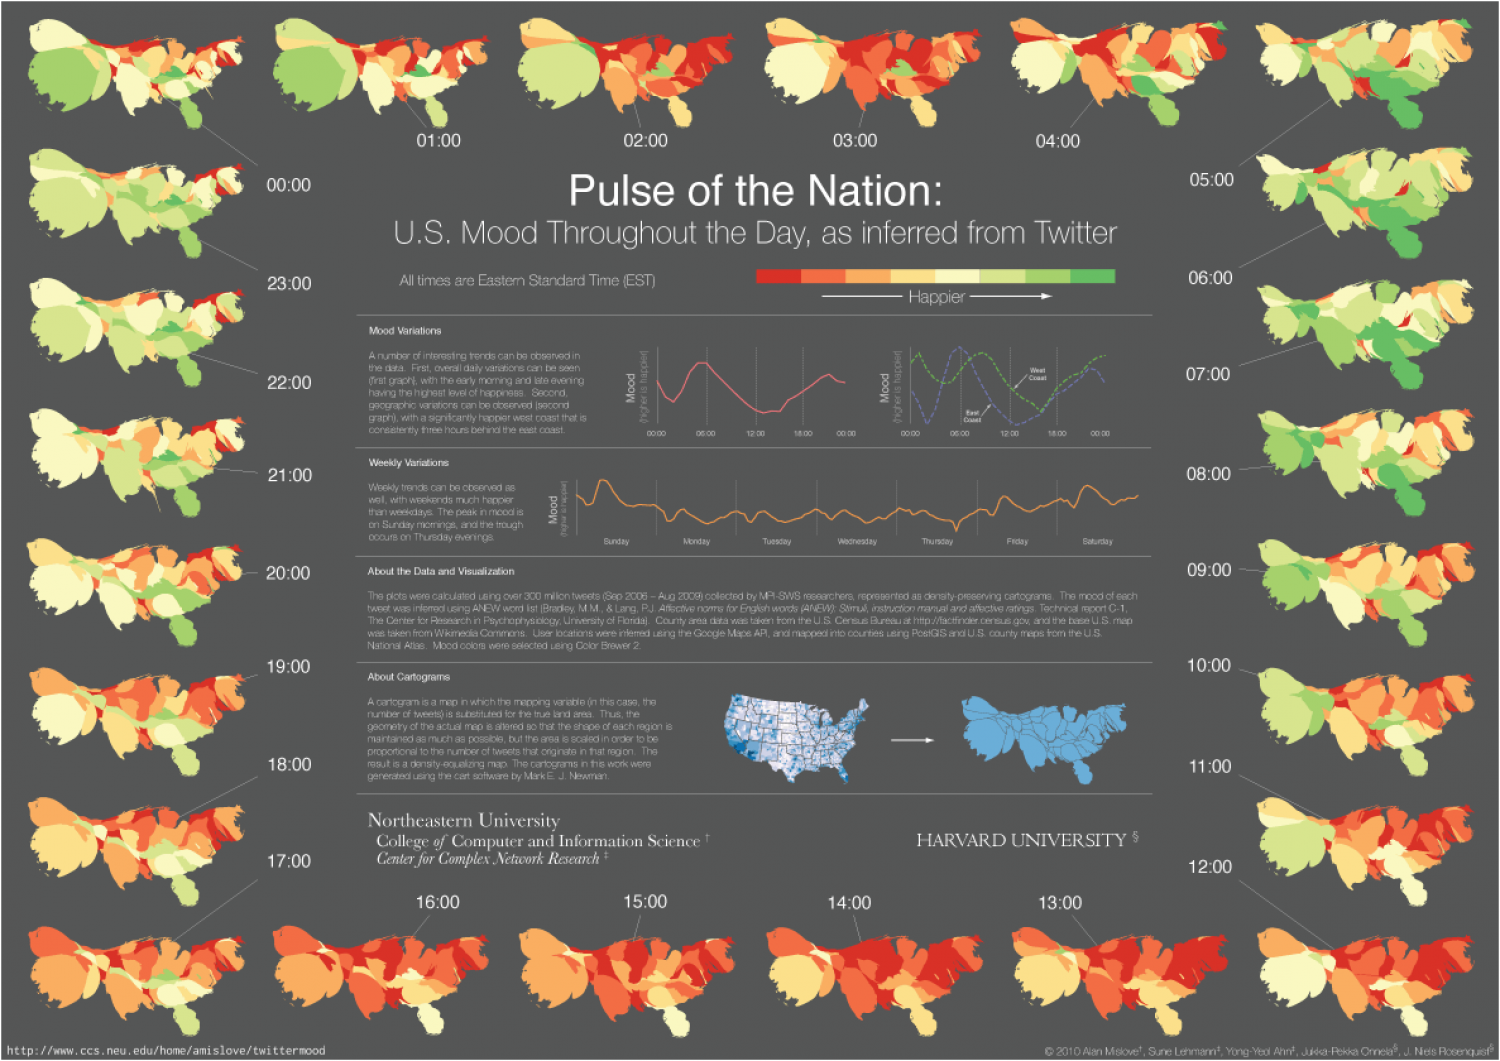 Pulse of the Nation Infographic